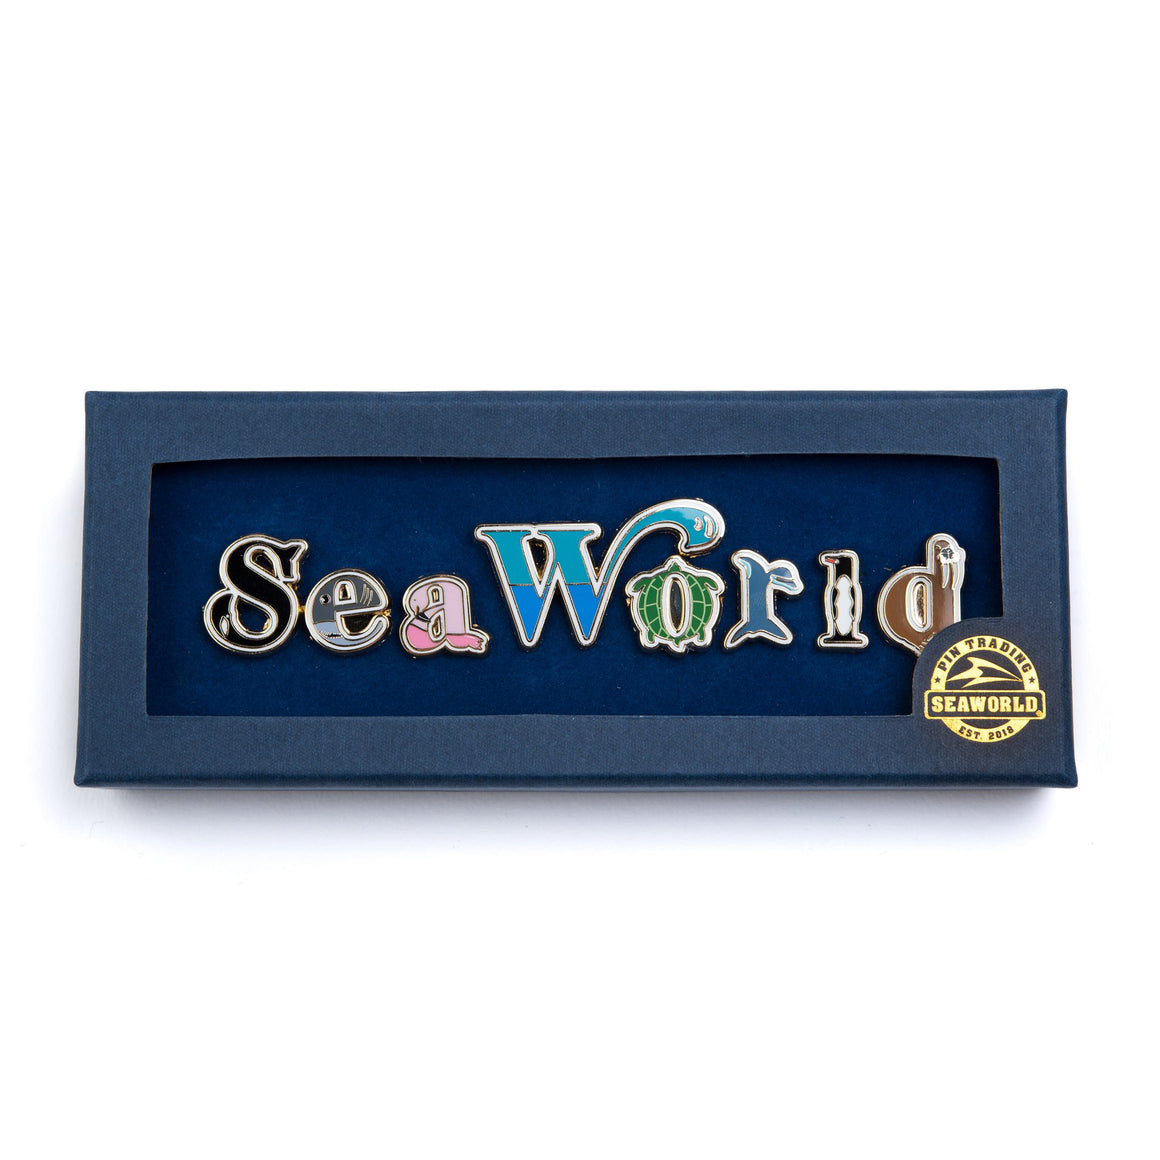 SeaWorld Letters Pins Box Set